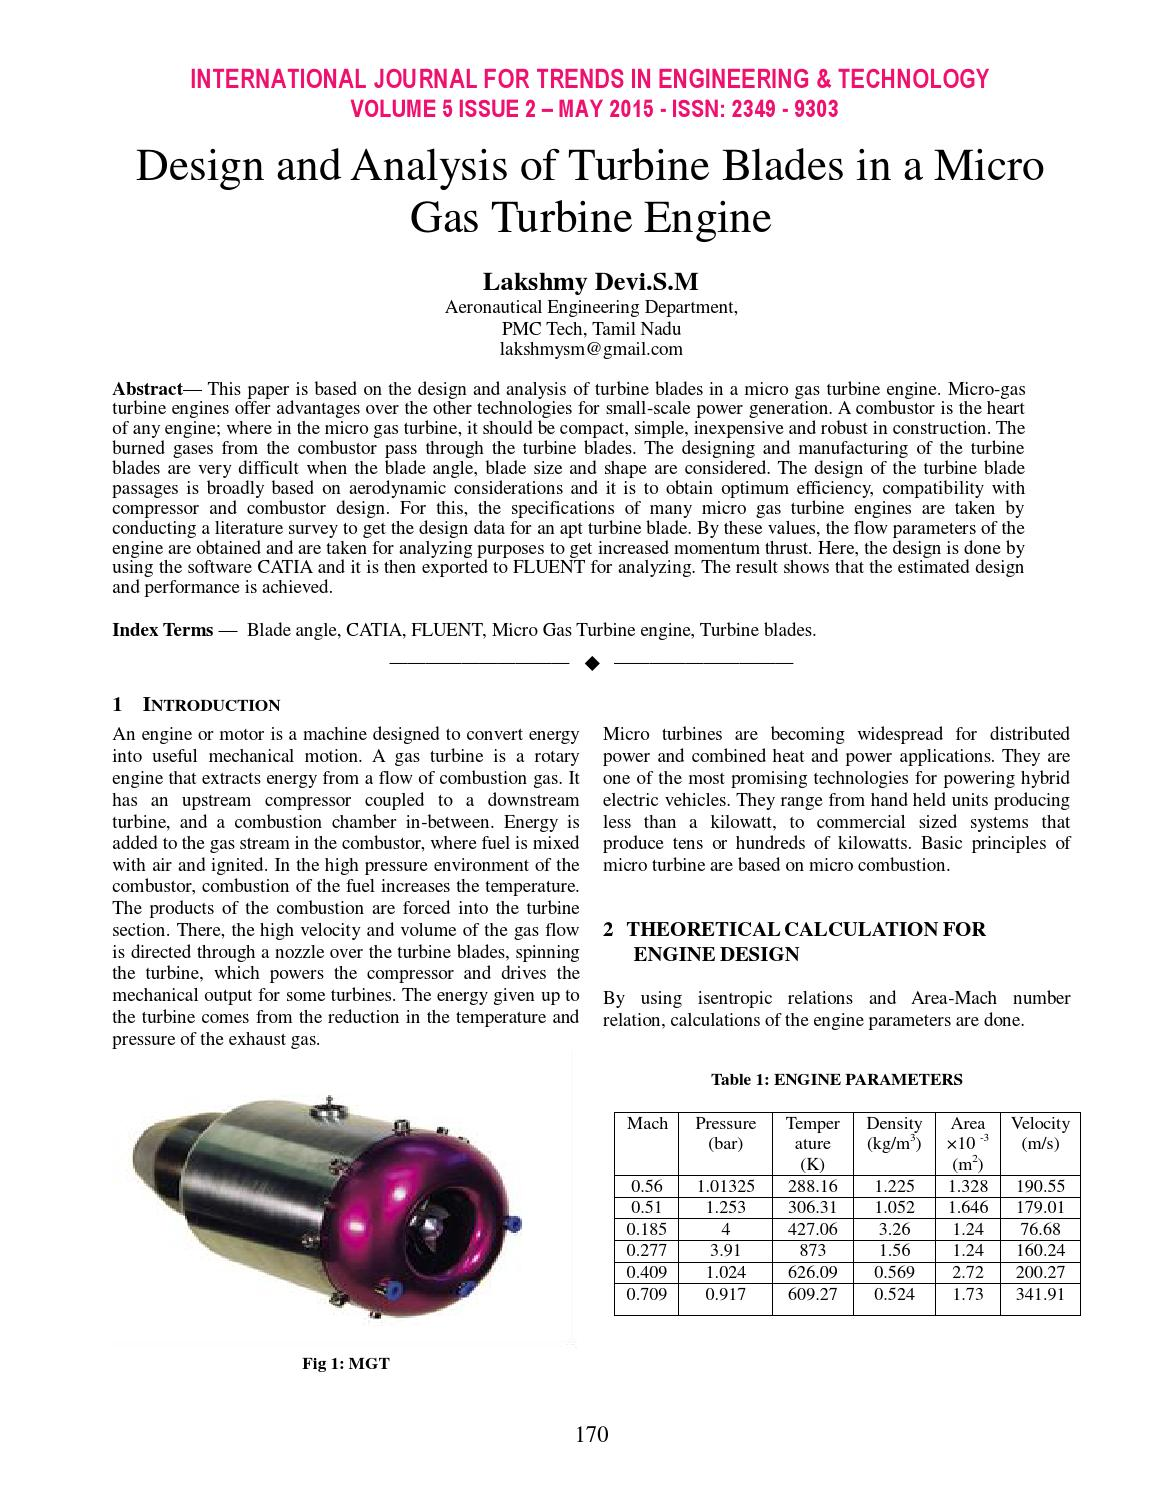 Design and Analysis of Turbine Blades in a Micro Gas Turbine Engine